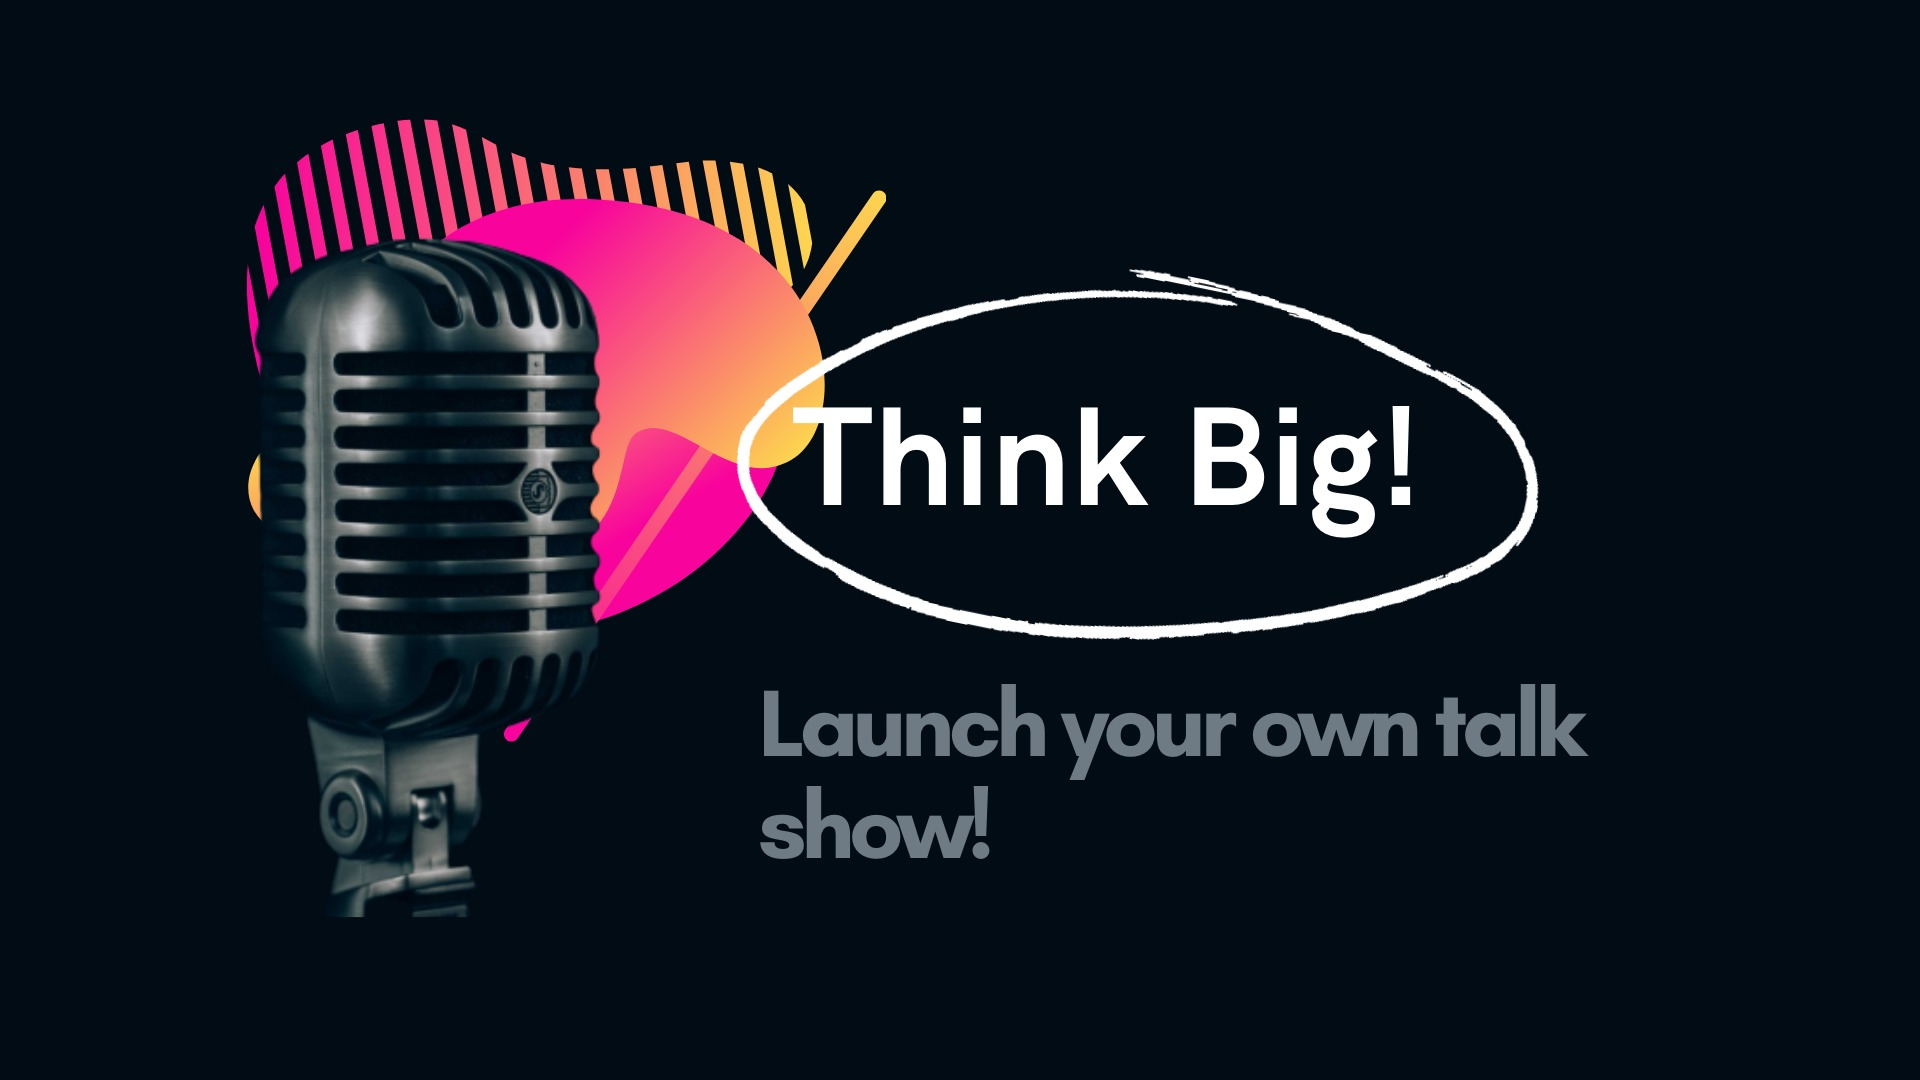 Winkl Blog - Think Big!